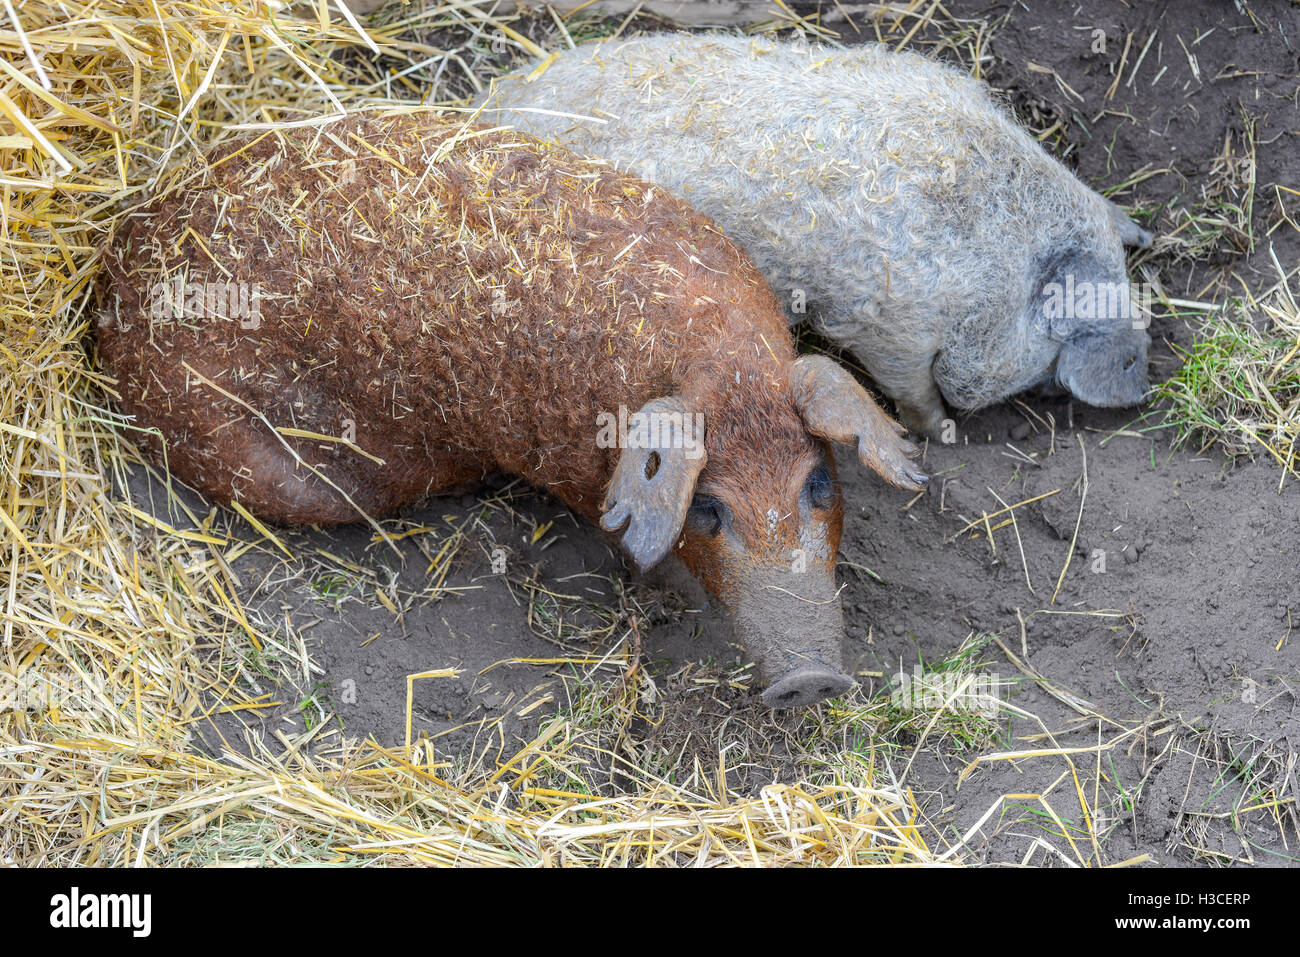 Two pigs sitting in the black earth and hay - Stock Image